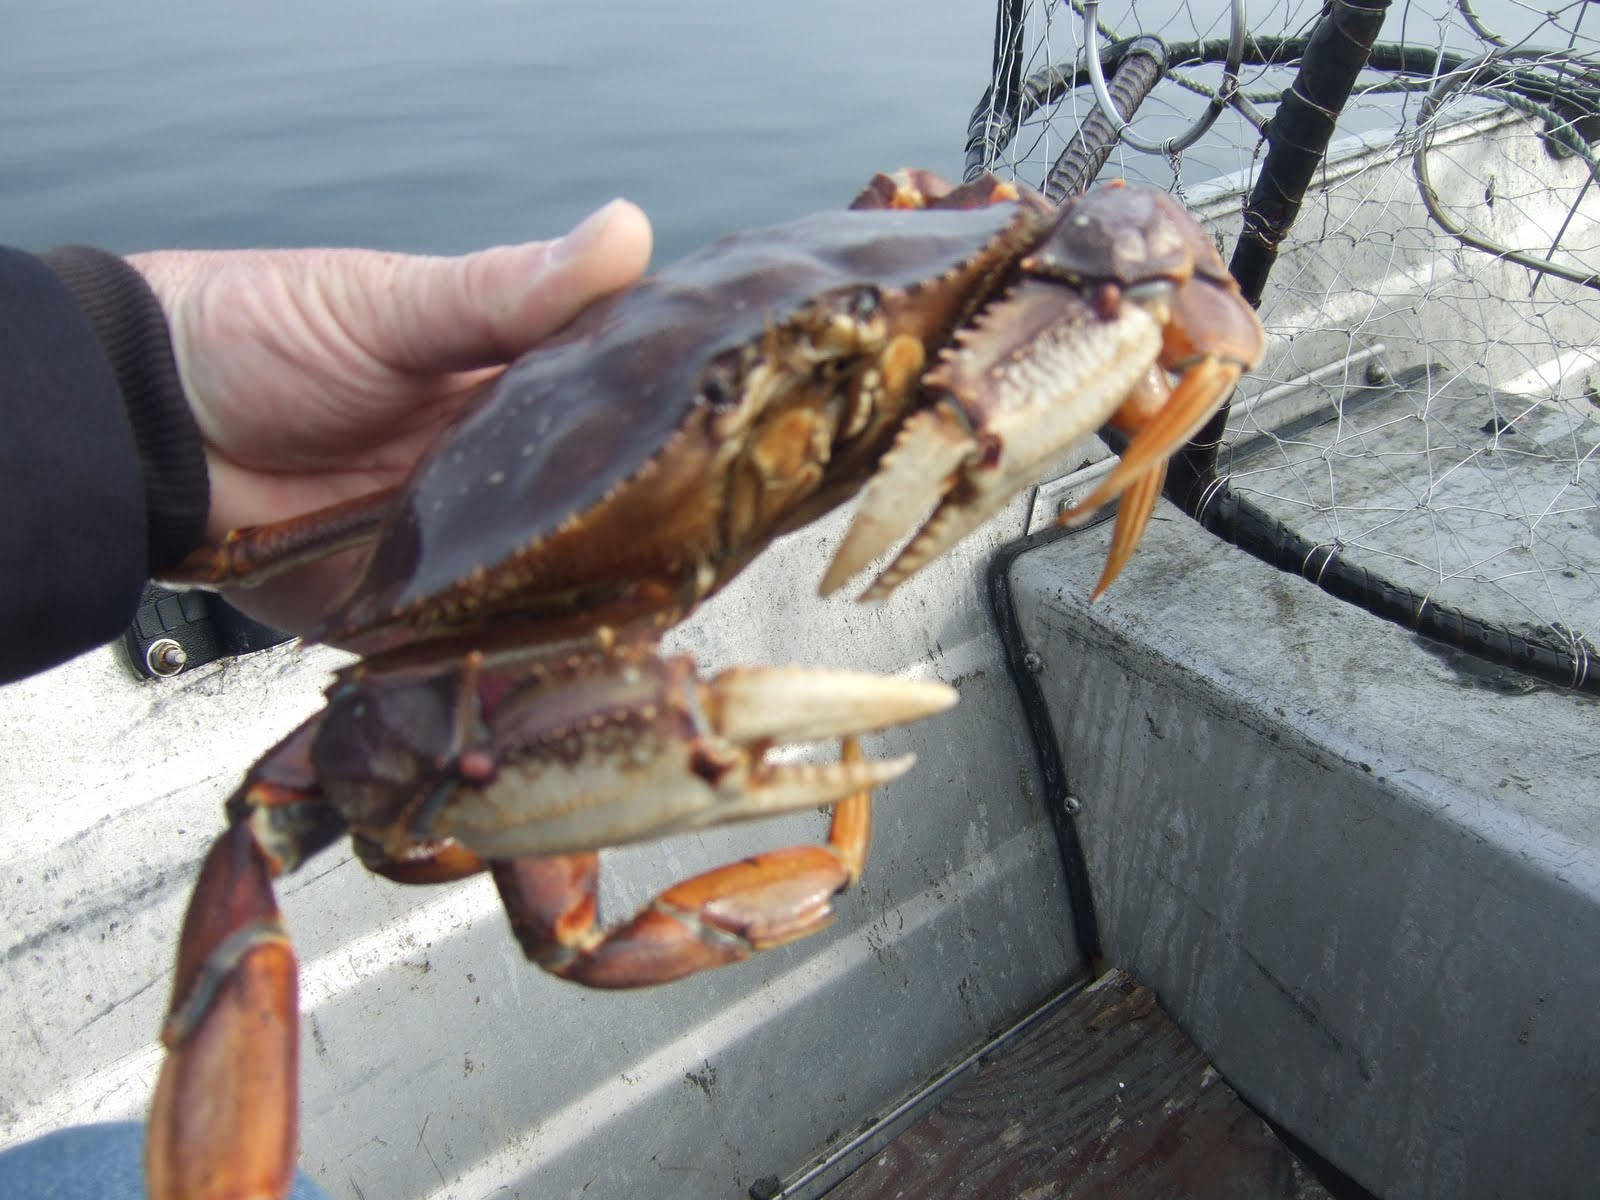 how to kill crab humanely